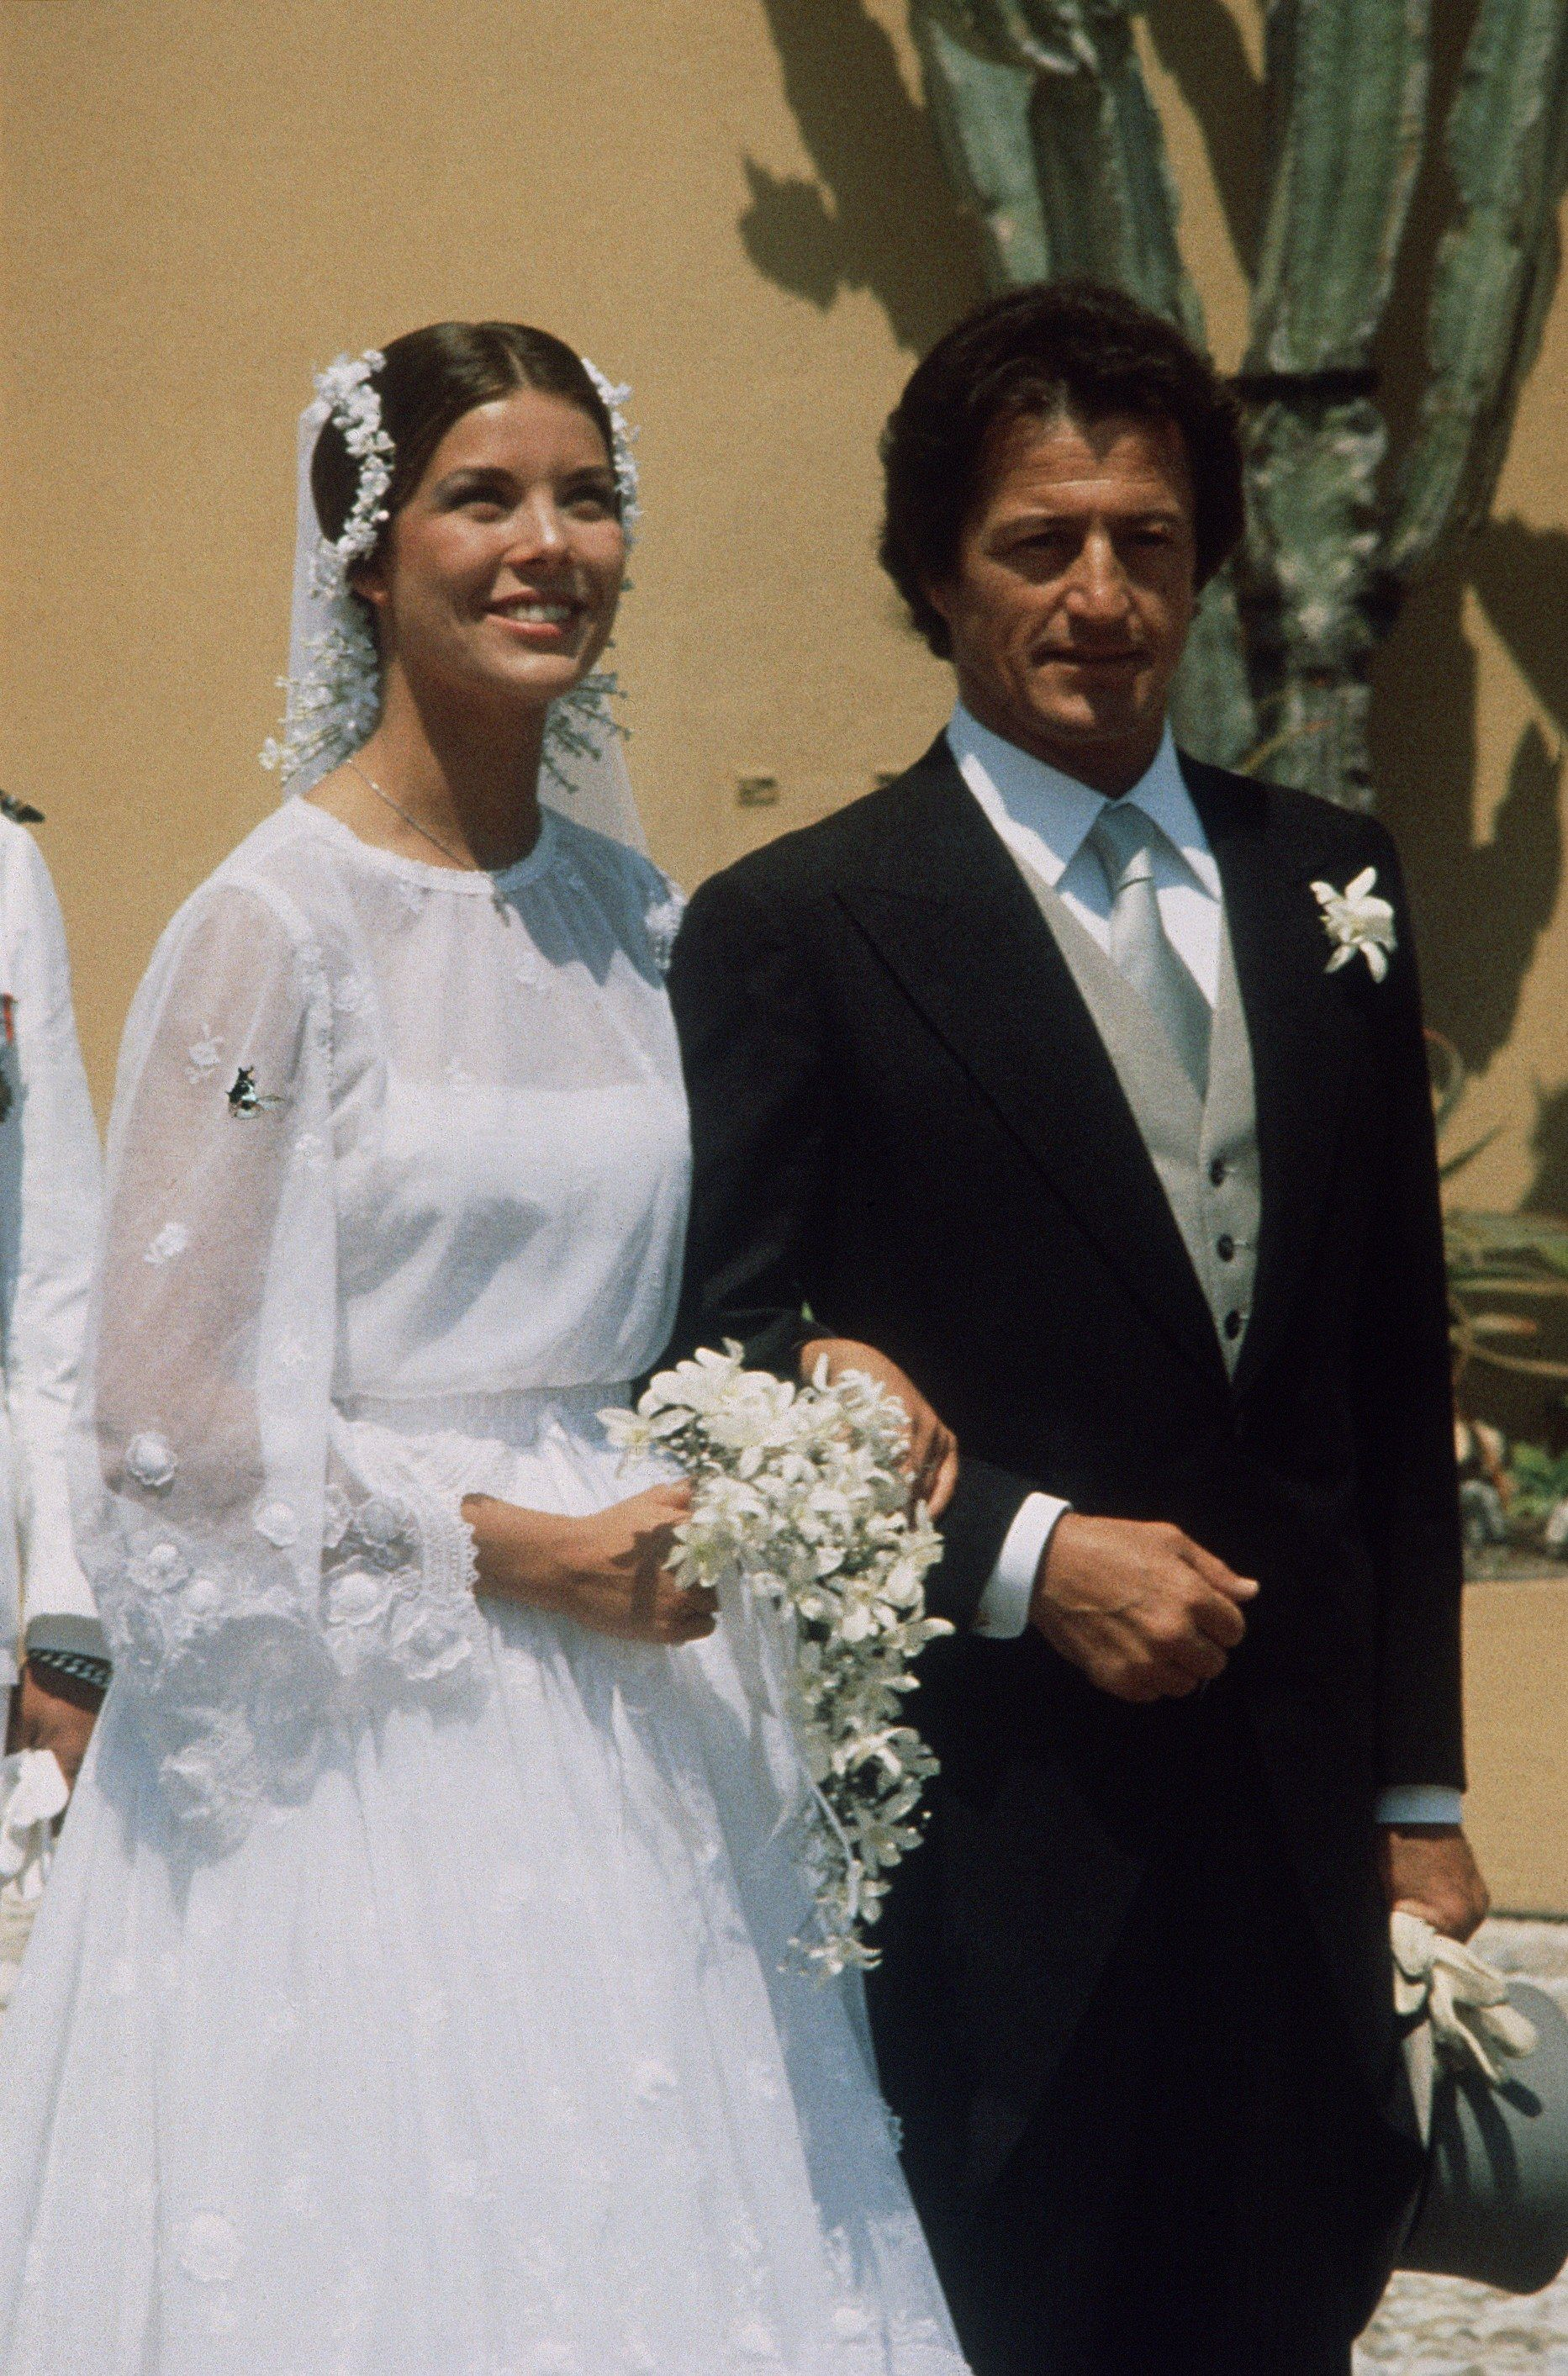 Royal wedding dress   Royal Wedding Dresses in History You Have to See Before the Royal